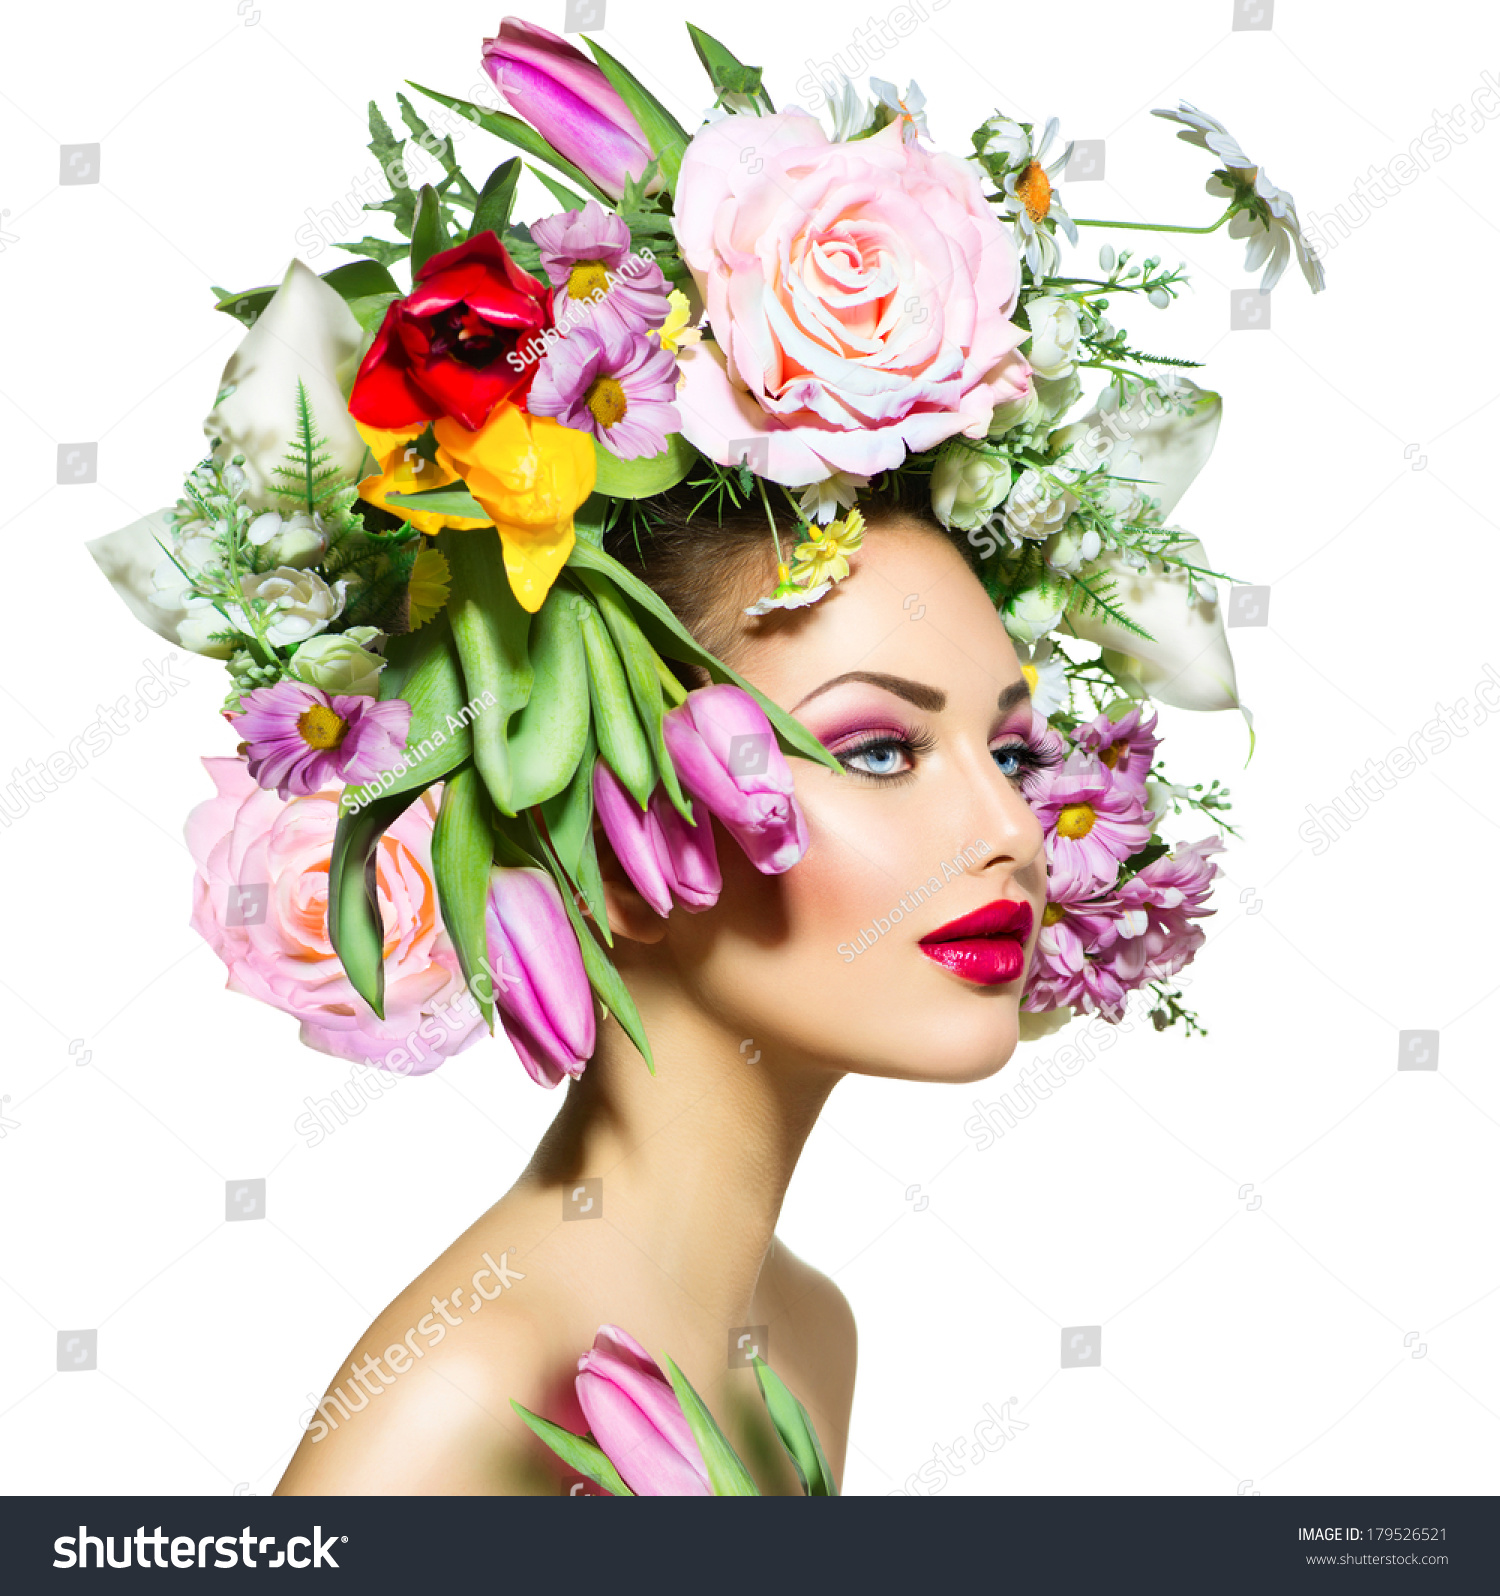 Spring woman beauty girl flowers hair stock photo 179526521 spring woman beauty girl with flowers hair style beautiful model woman with blooming flowers dhlflorist Gallery